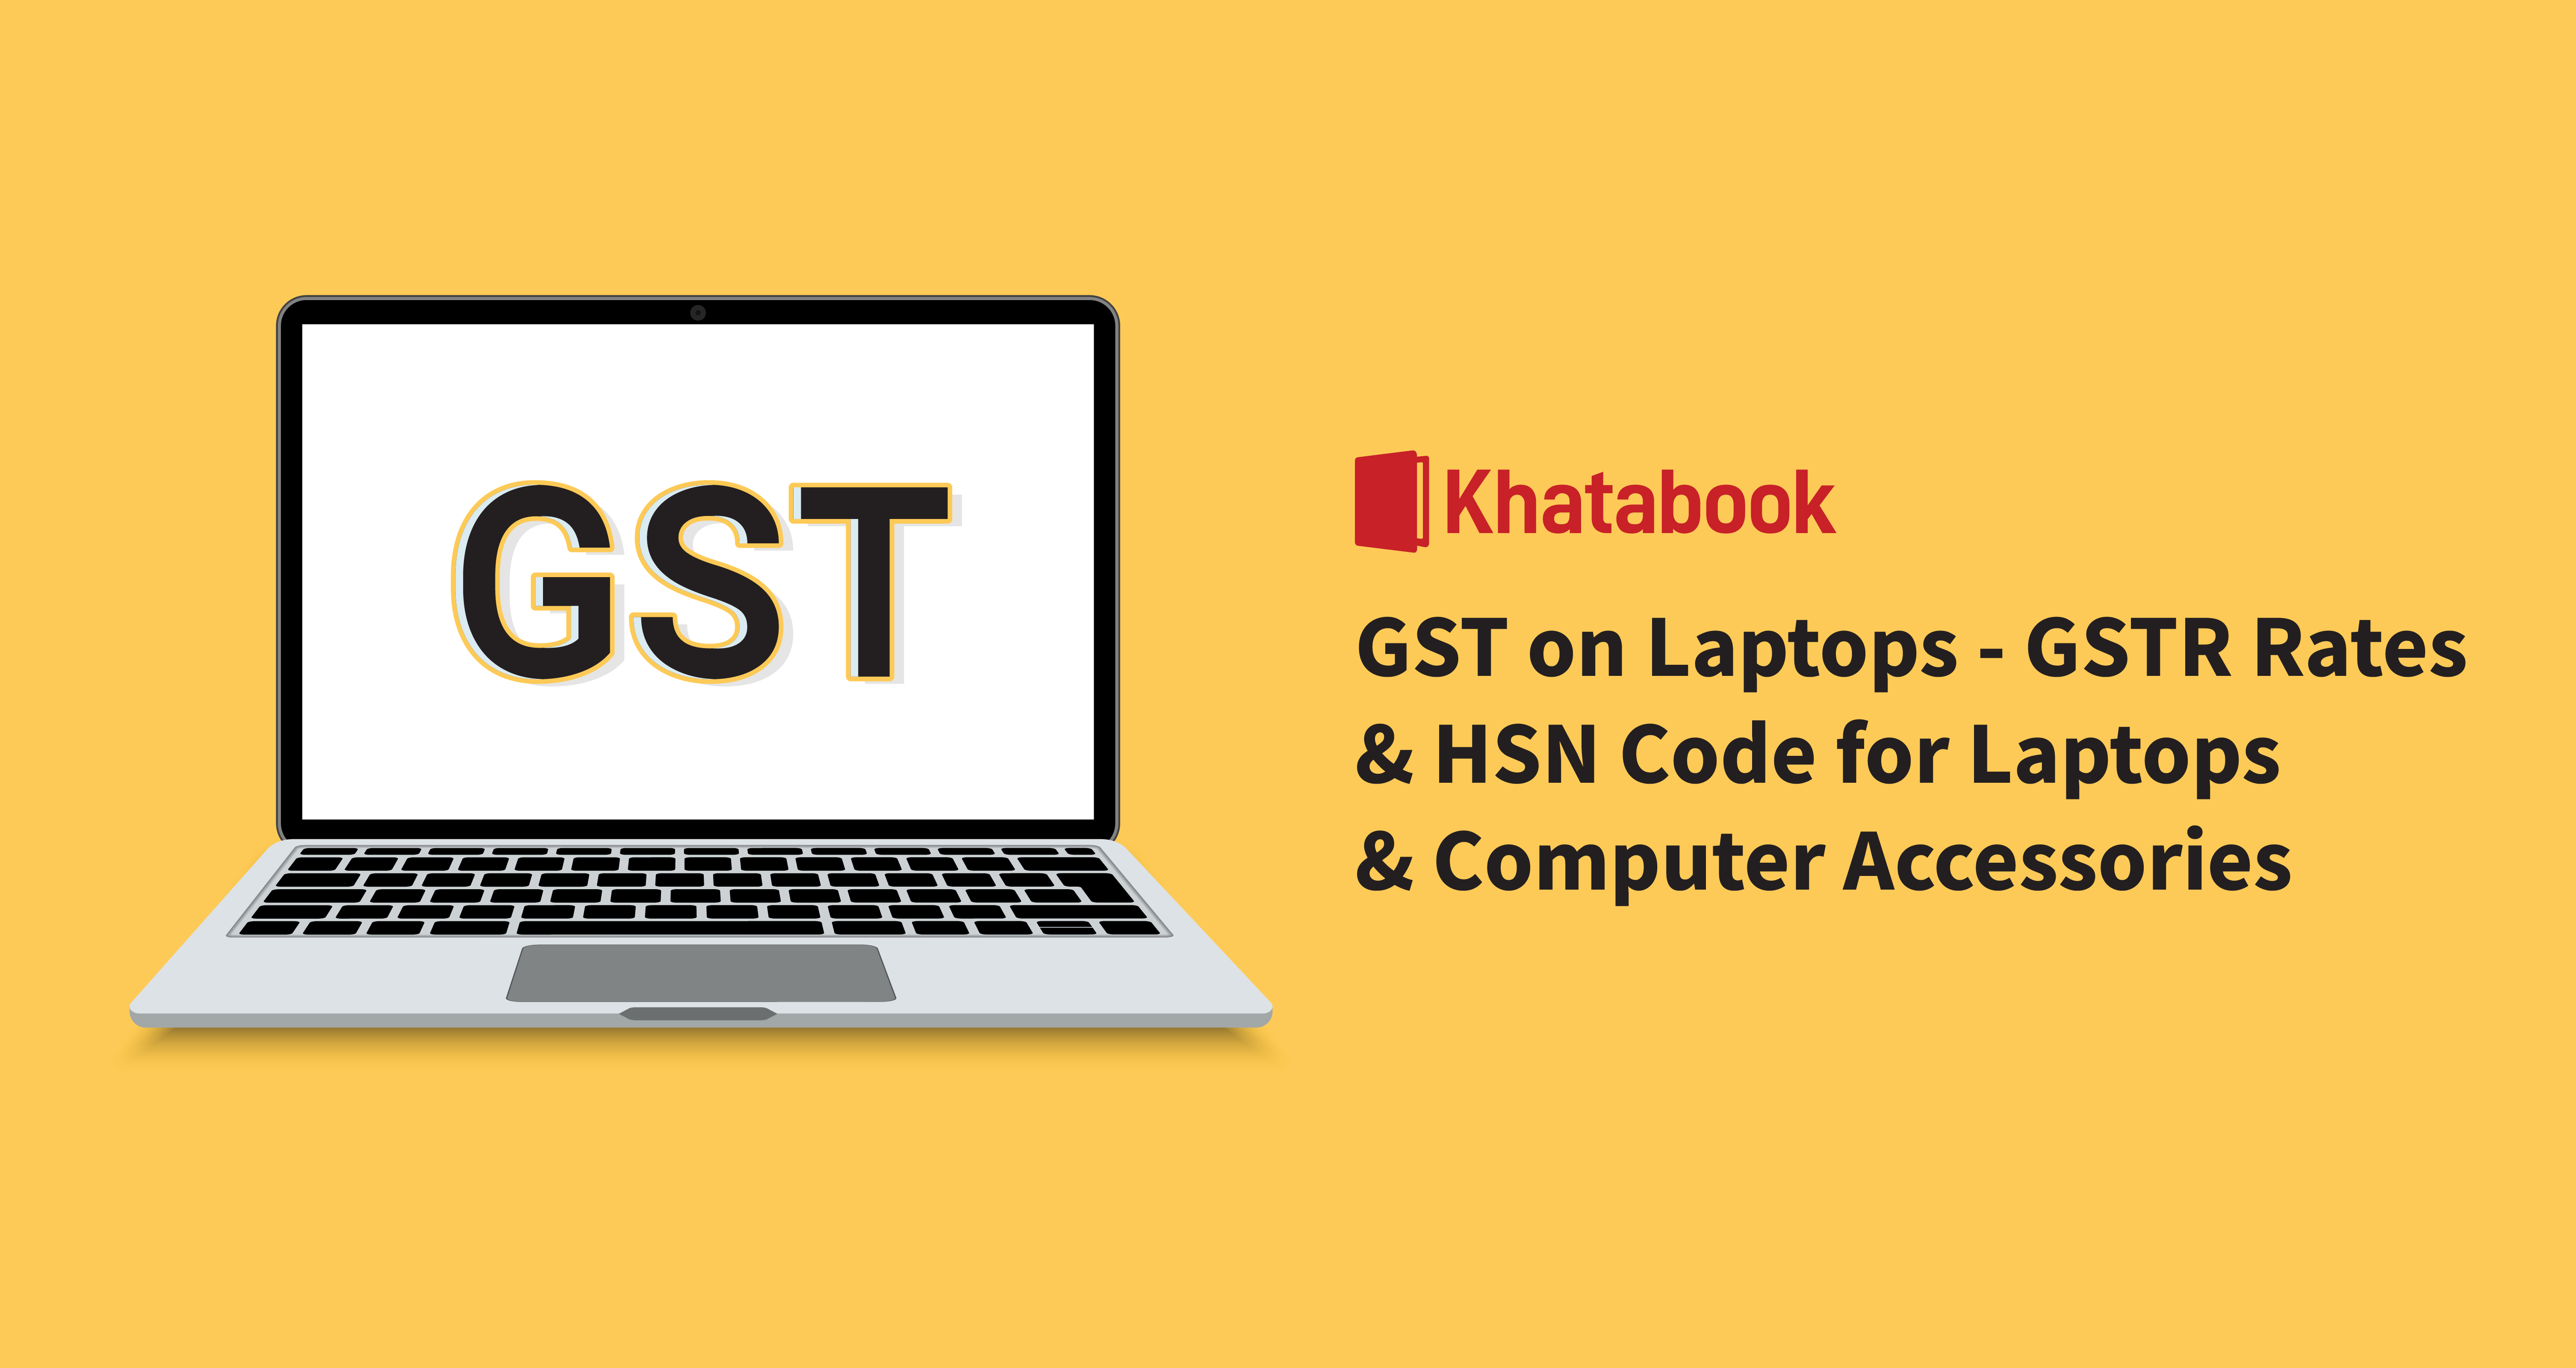 GST on Laptops   Laptops & Computer Accessories GSTR Rates & HSN Code